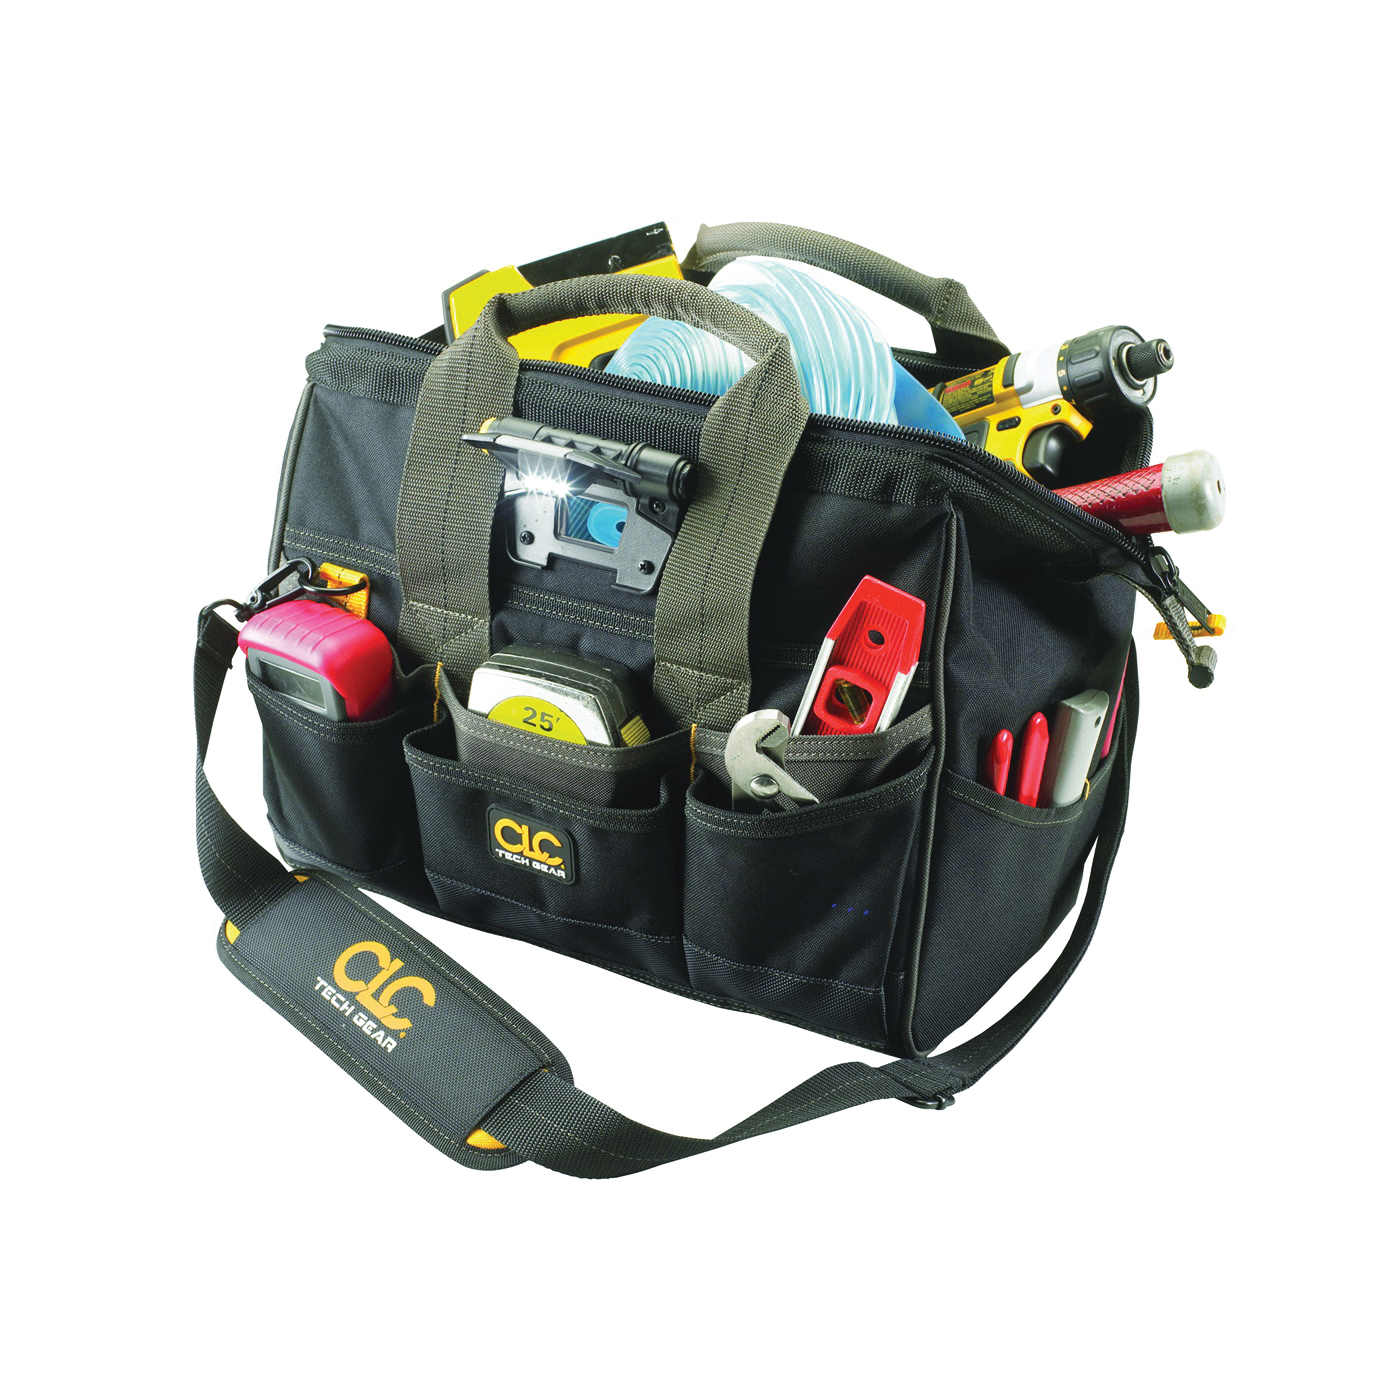 Picture of CLC Tech Gear BIGMOUTH L230 Tool Bag with Integrated LED Light, 8 in W, 11-1/2 in D, 14 in H, 29 -Pocket, Polyester